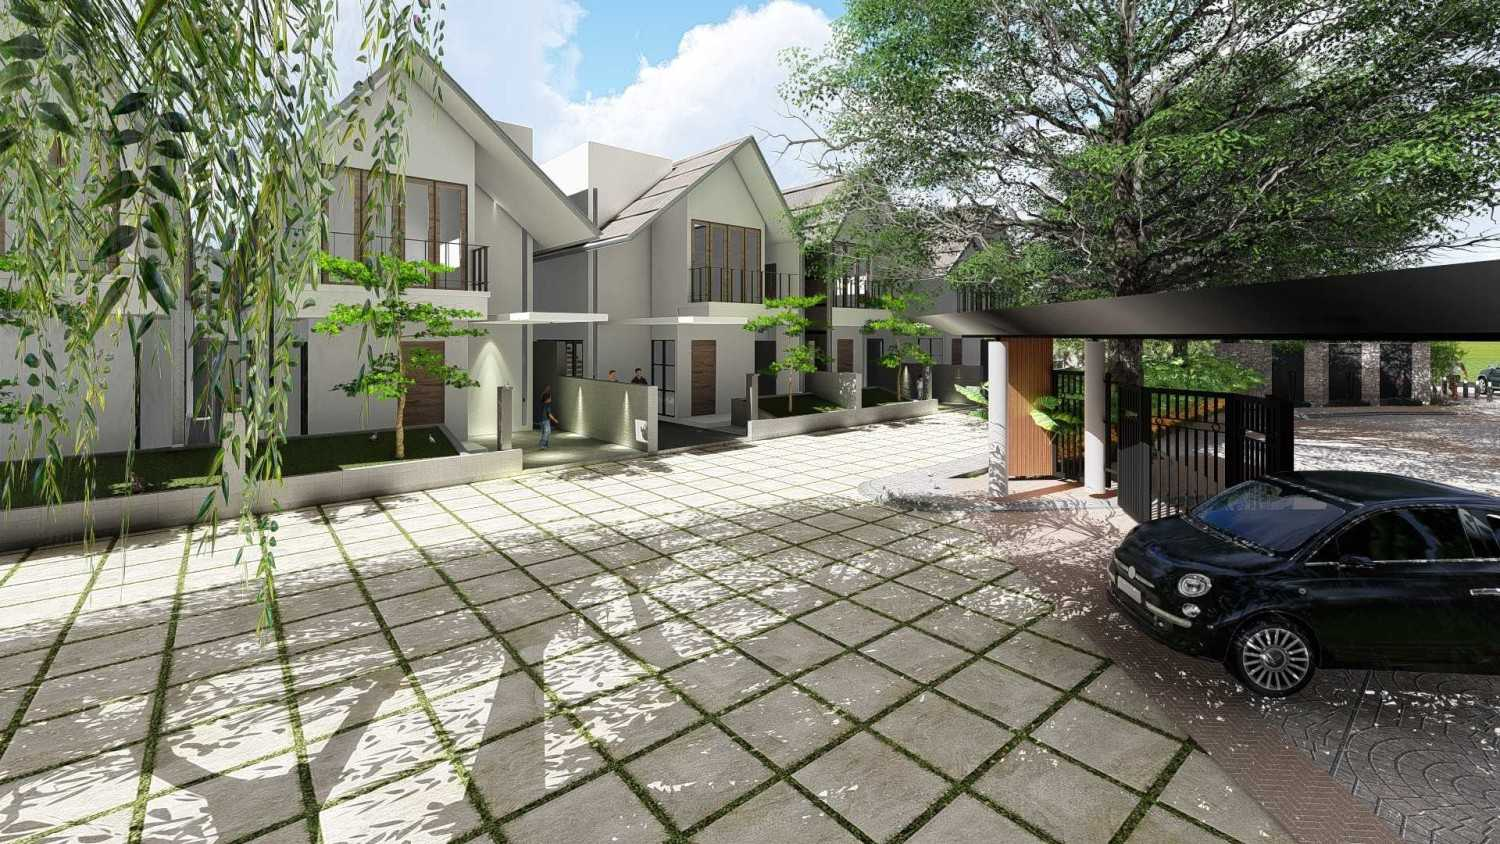 Jasa Design and Build Samitrayasa Design di Depok